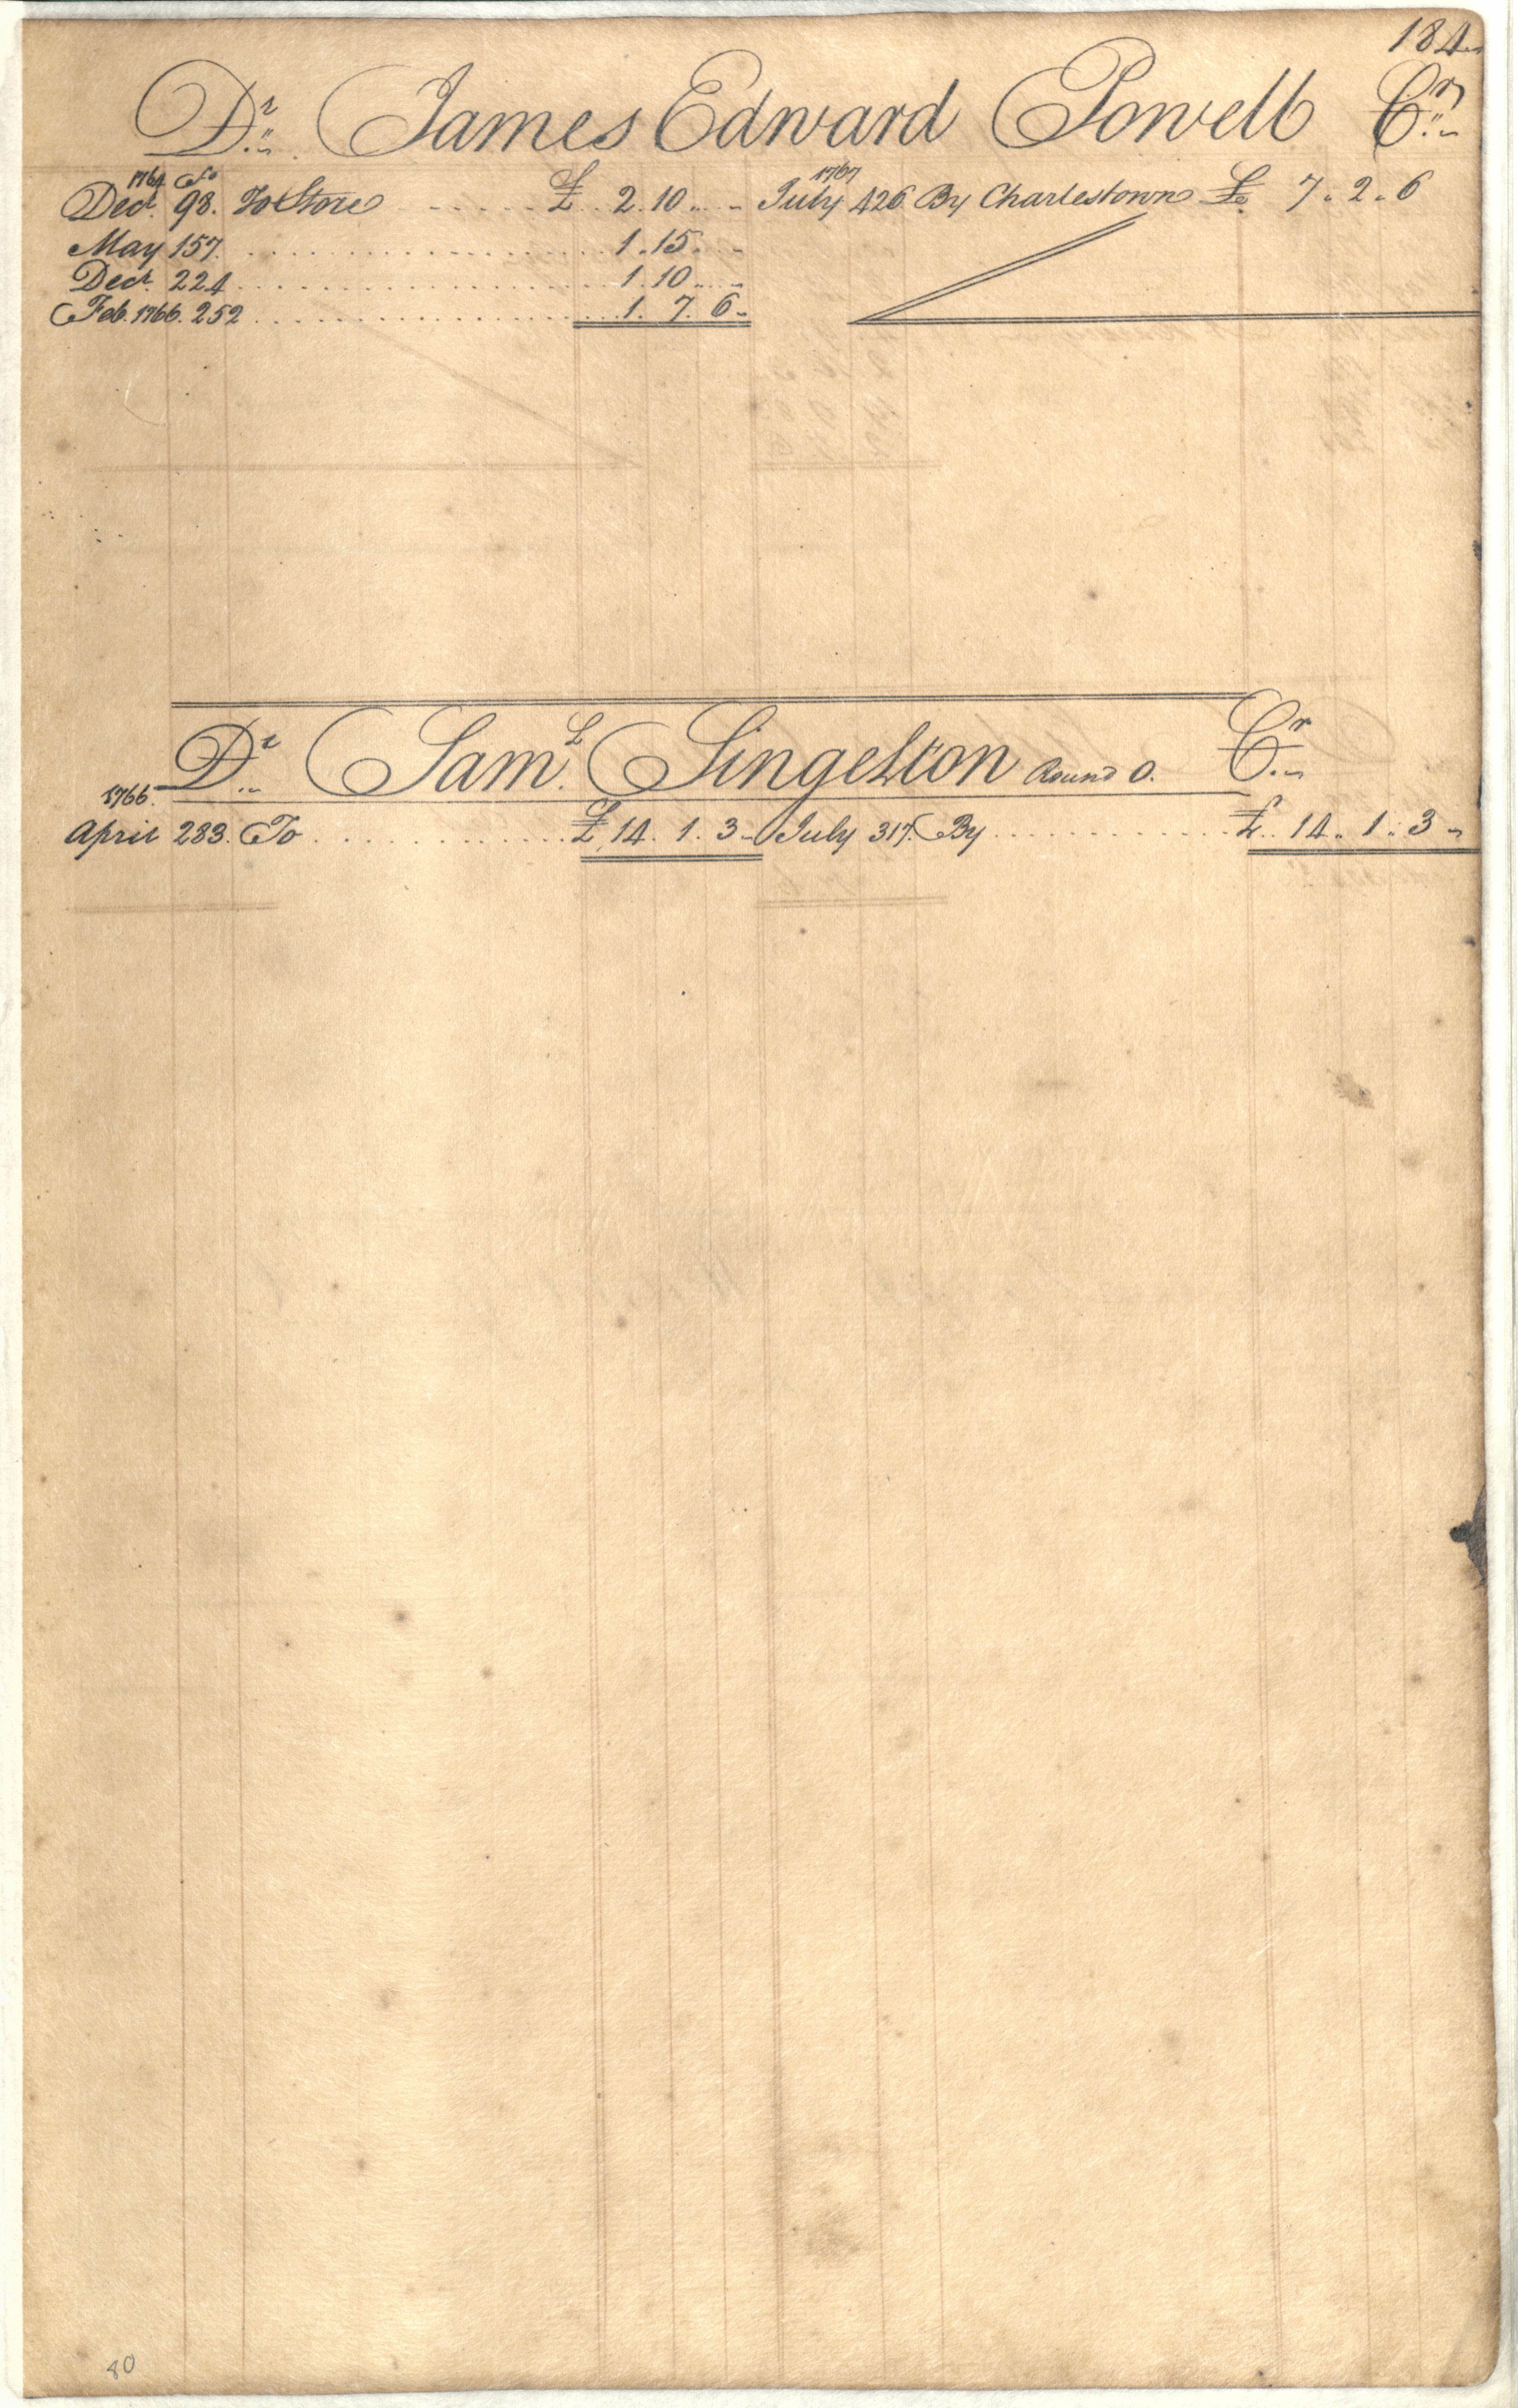 Plowden Weston's Business Ledger, page 184